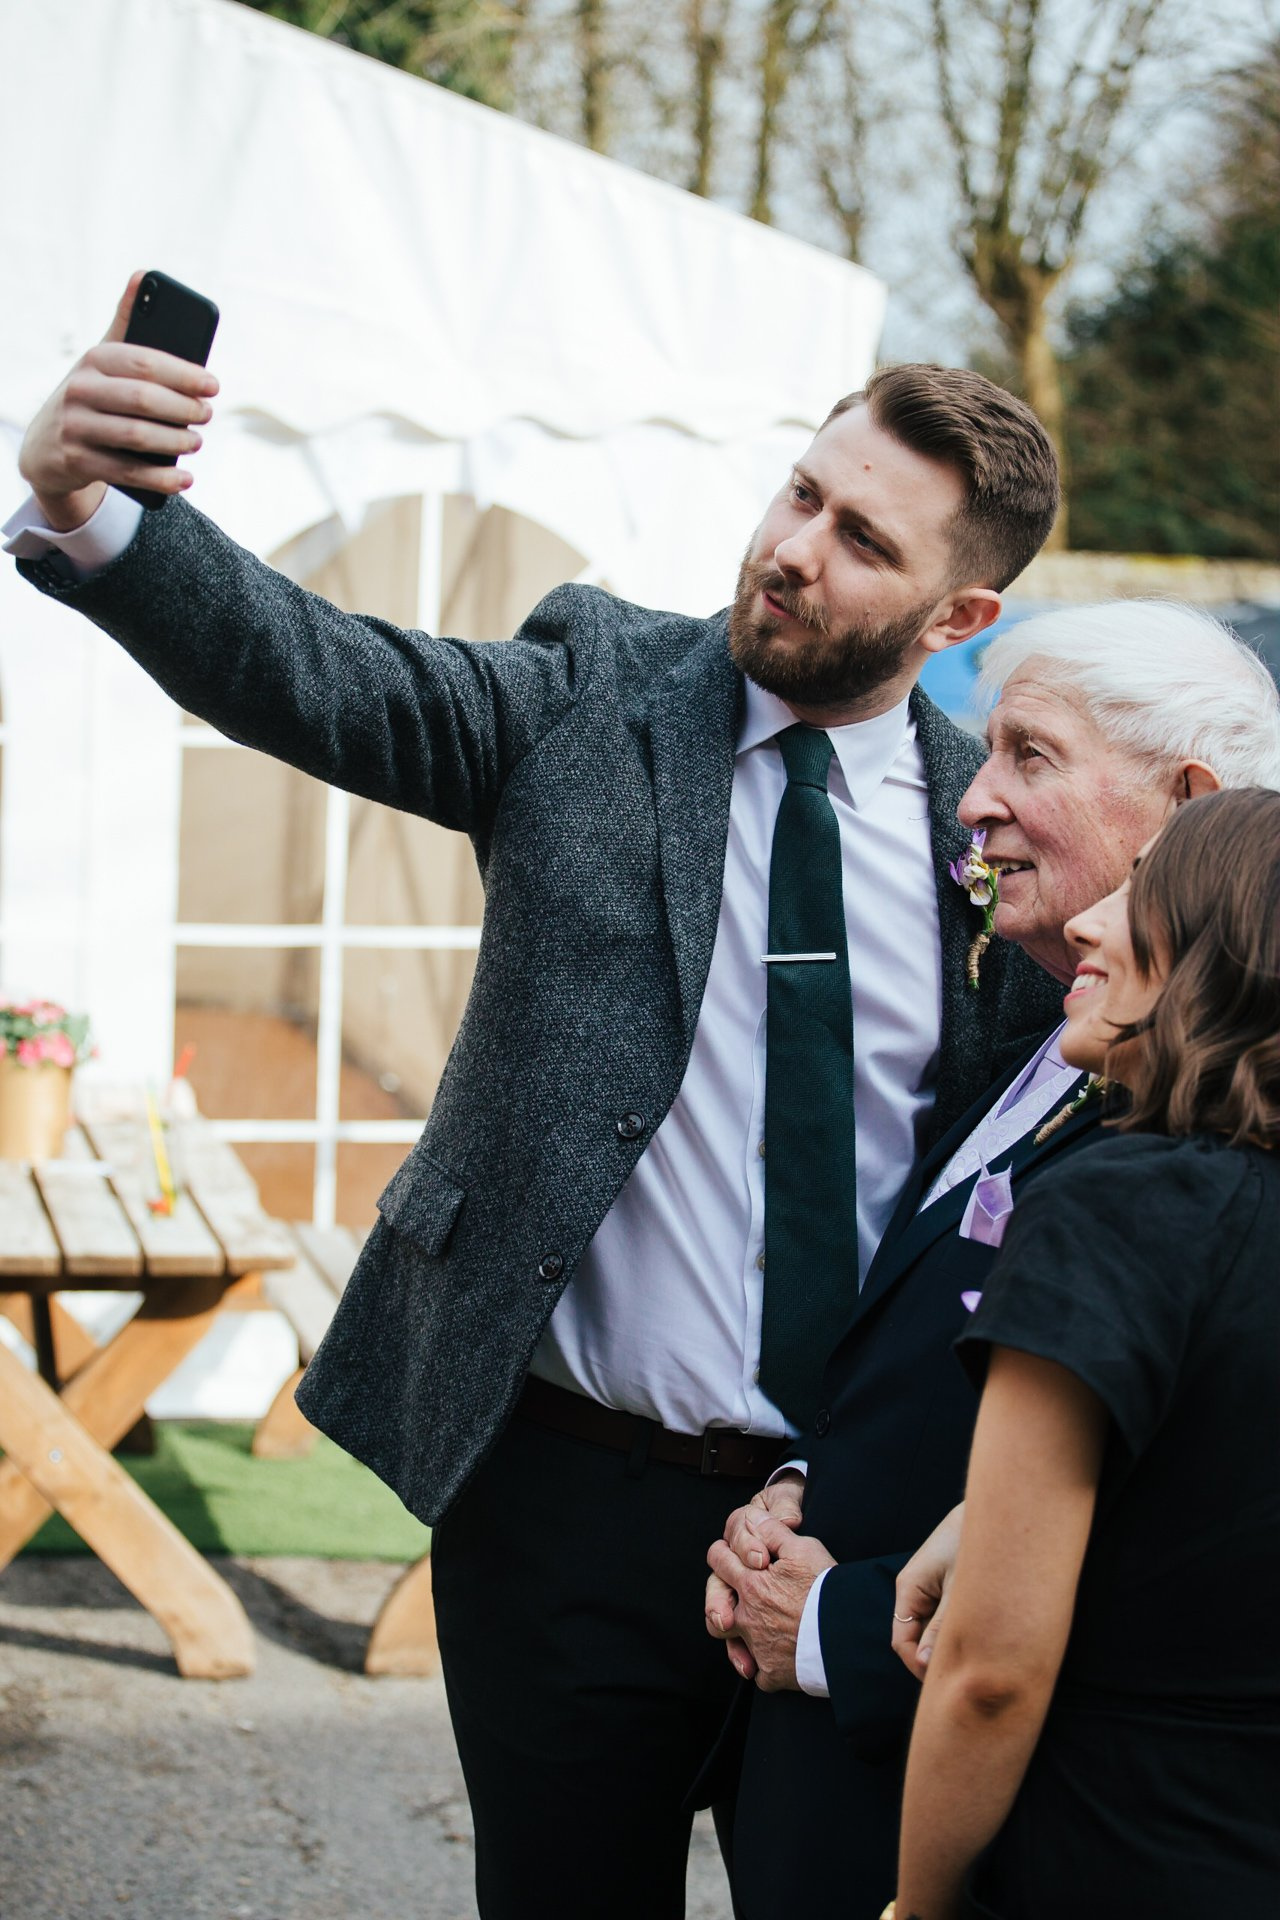 Guests taking a selfie at a wedding at The Bull Hotel Wrotham